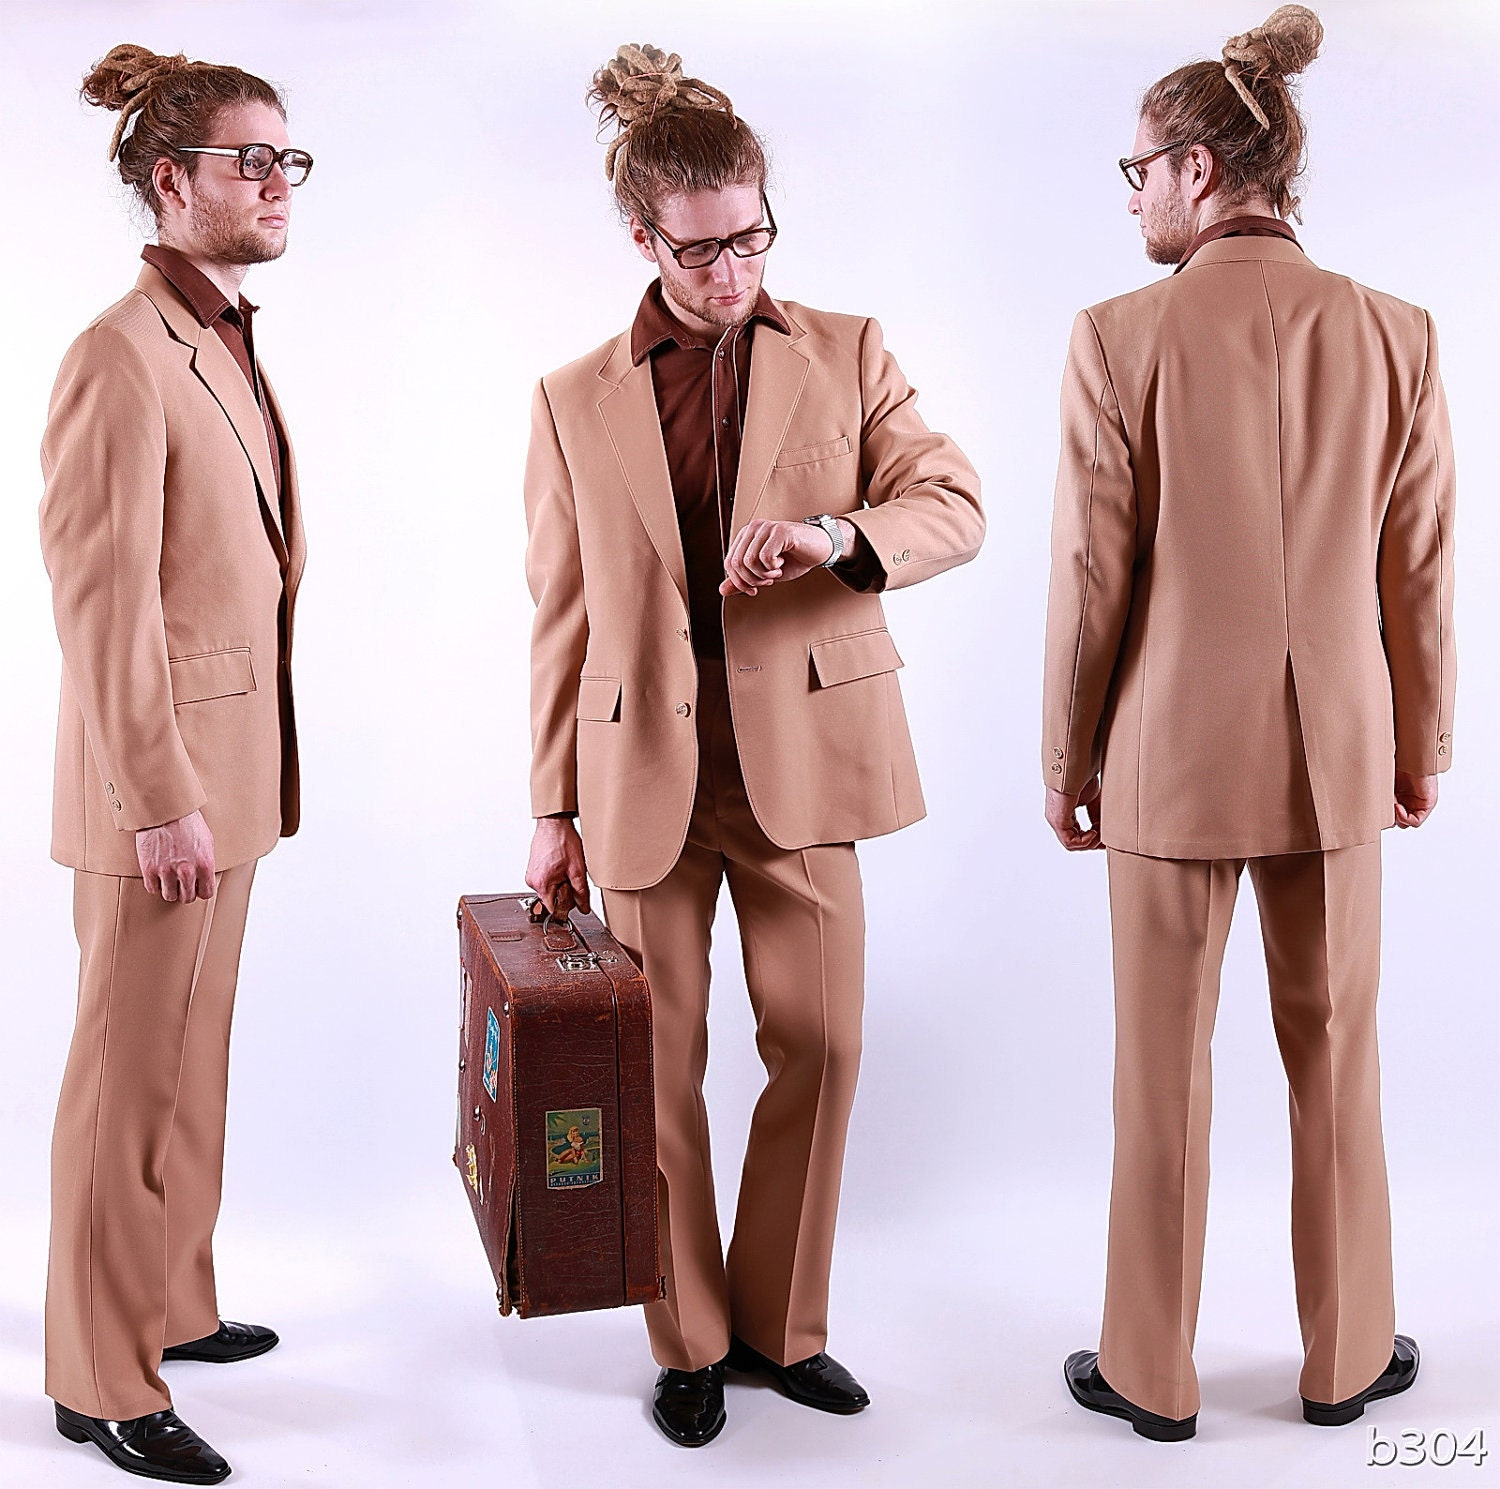 1940s Style Mens Clothing: Suits, Shirts, Pants, Hats, Shoes